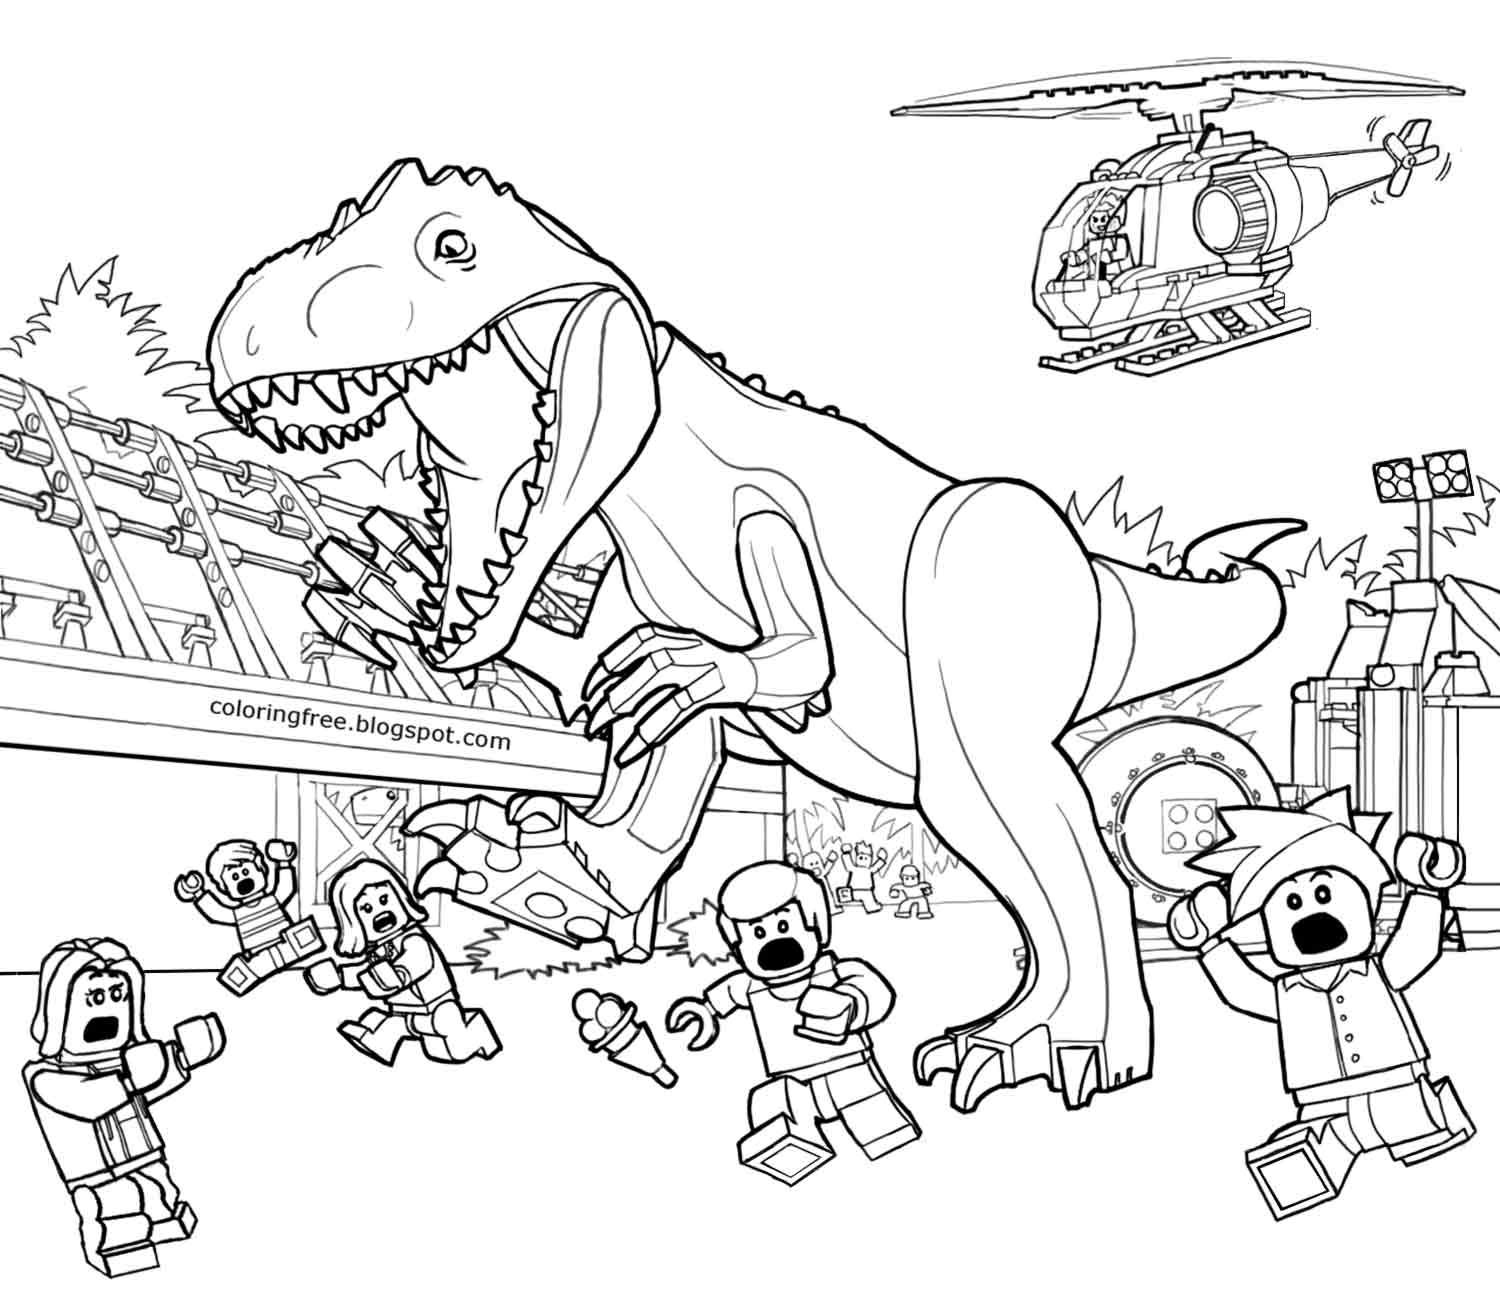 Printable coloring pages jurassic world - Prehistoric Landscape Jurassic World Lego Dinosaurs Minifigure Movie Printable Sheets Coloring Pages